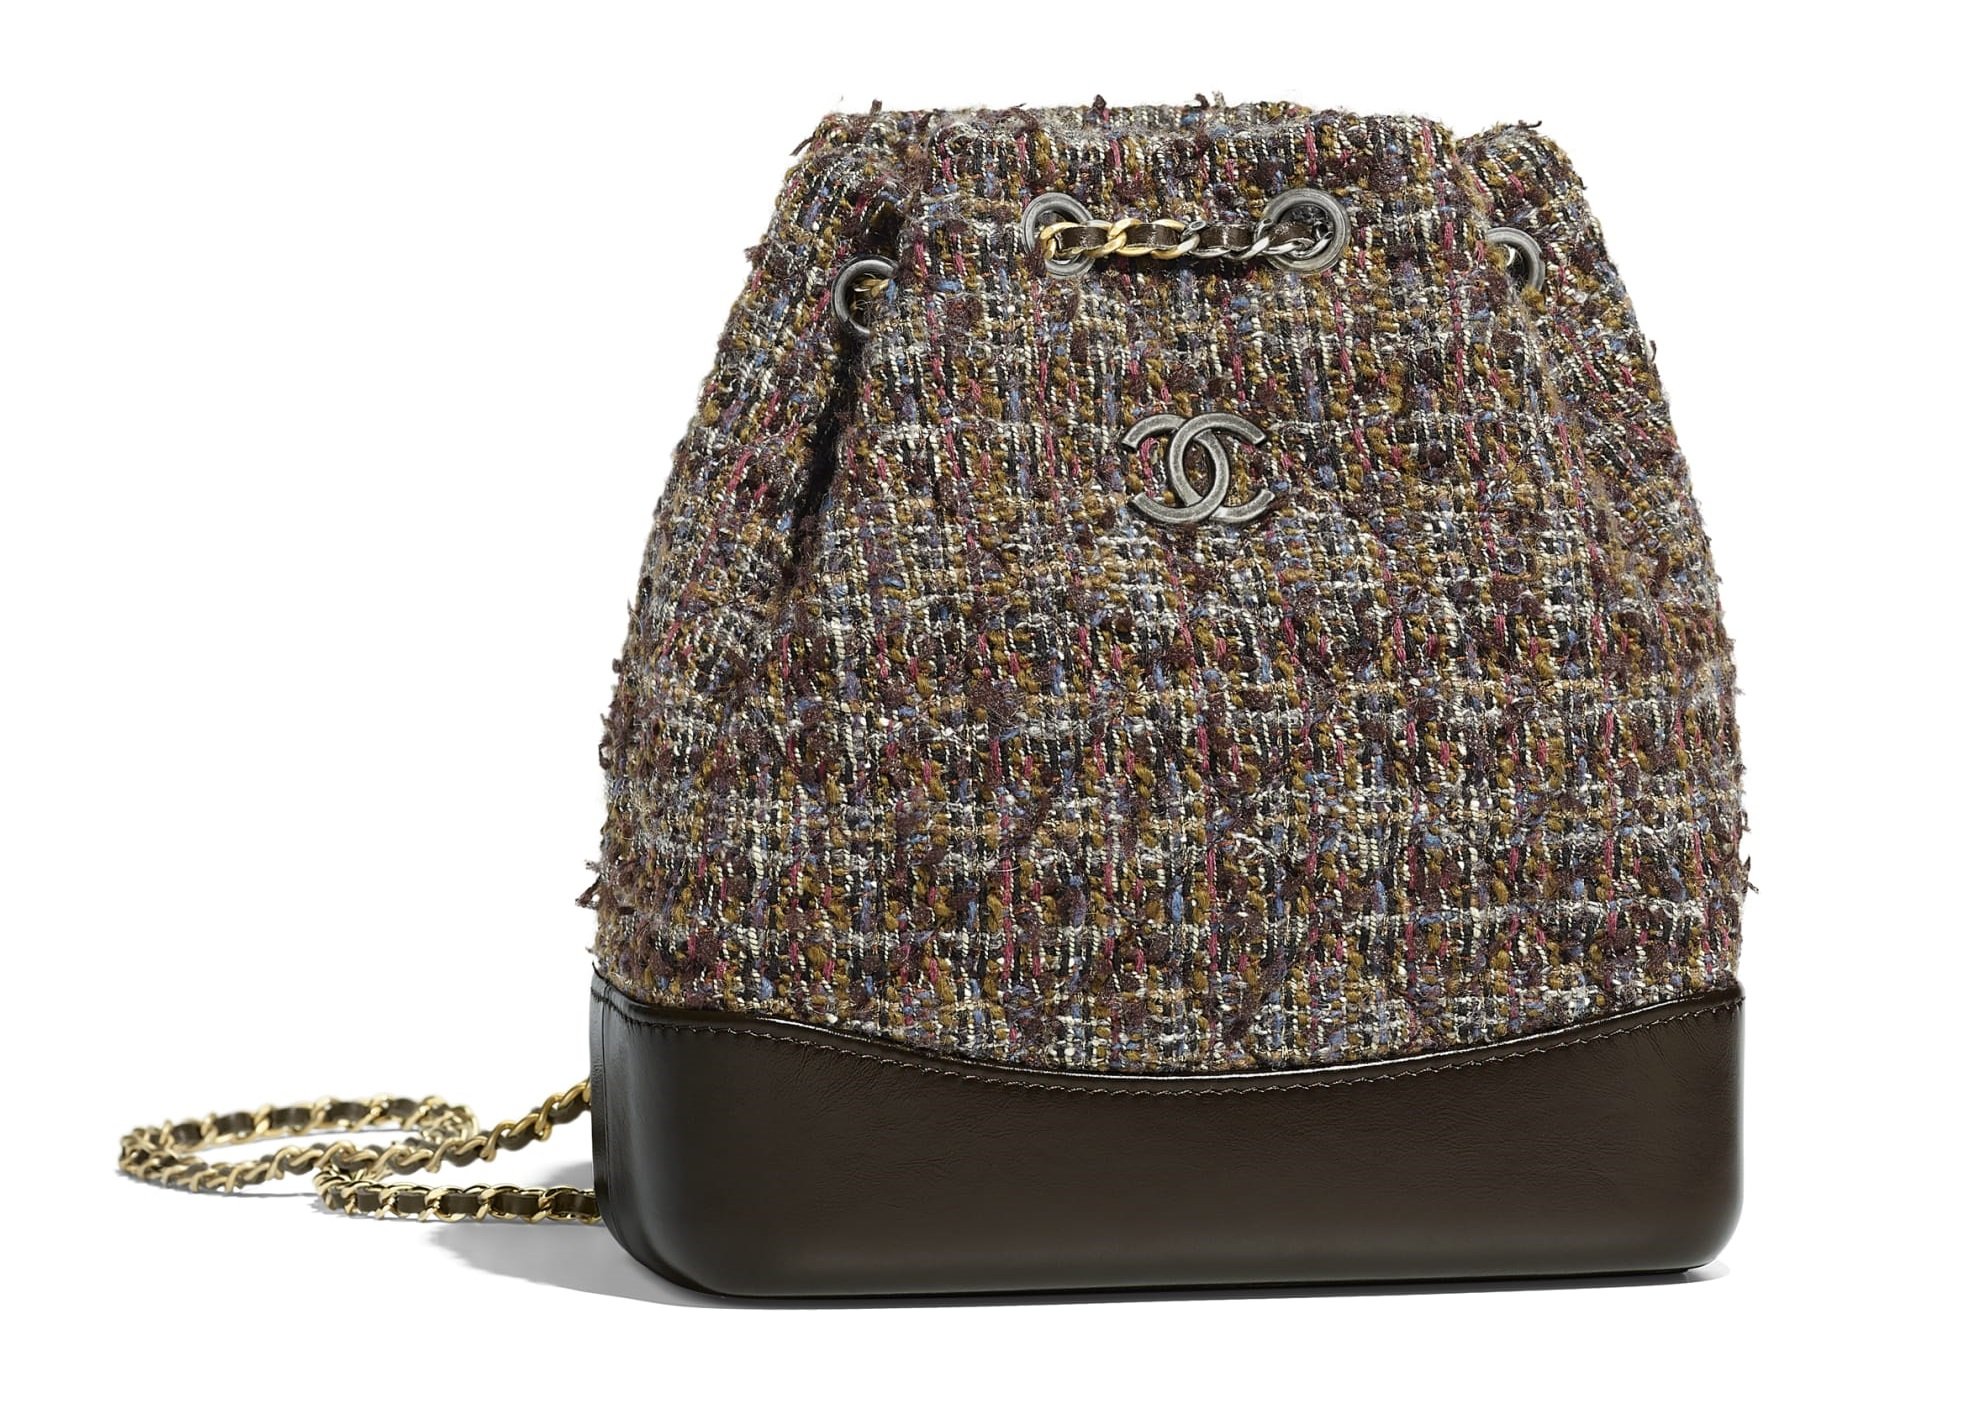 Borsa a secchiello Chanel in tweed e pelle tendenza inverno